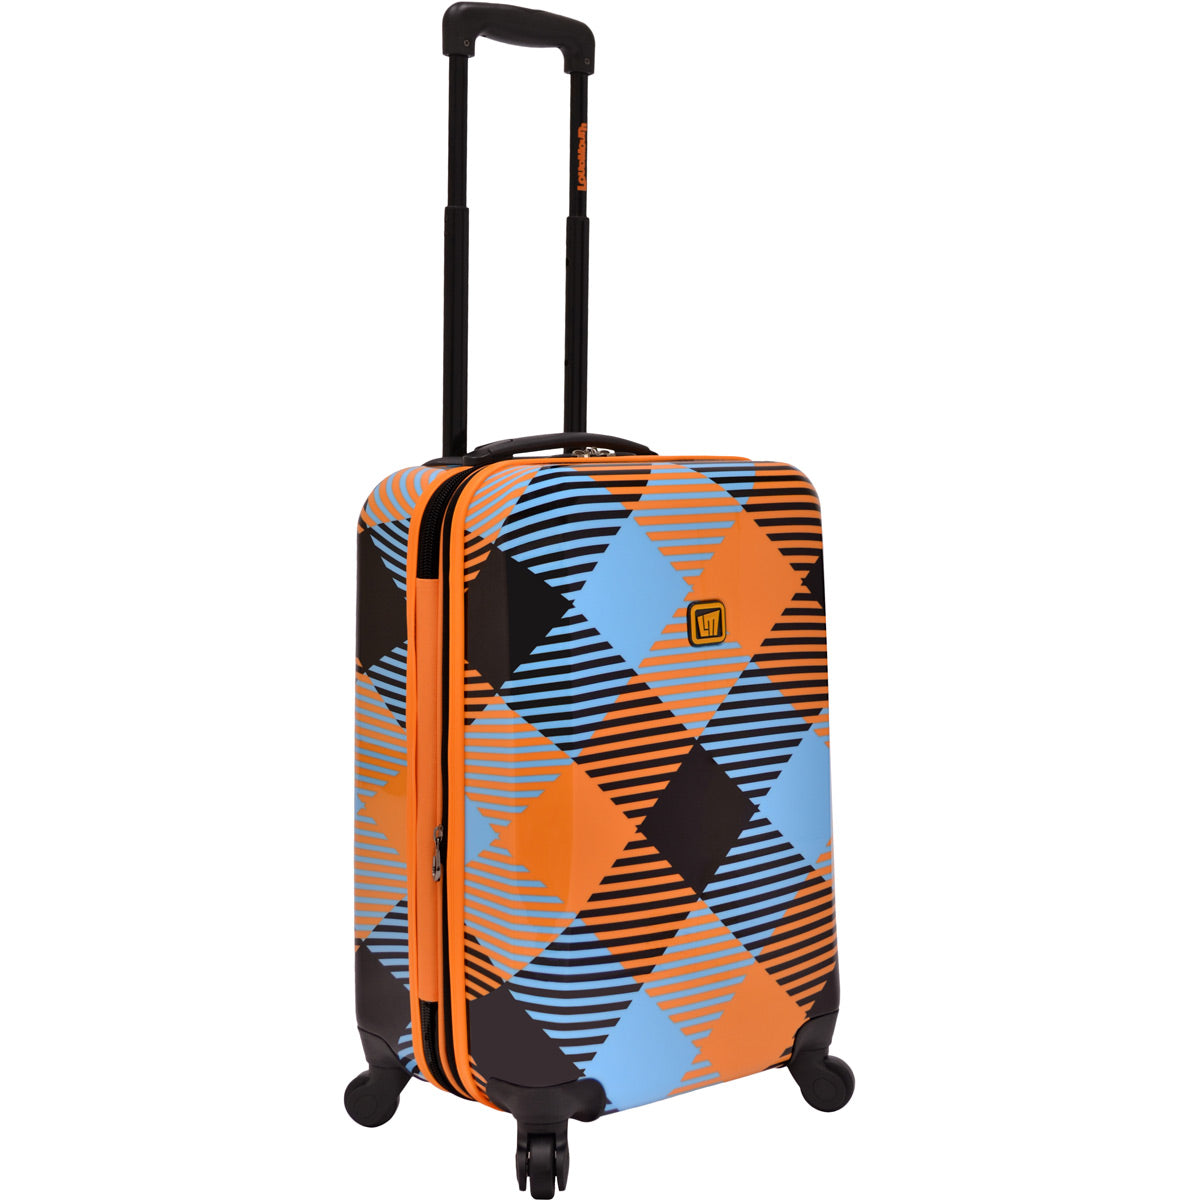 Loudmouth Microwave 22in Hardside Expandable Carry On Spinner